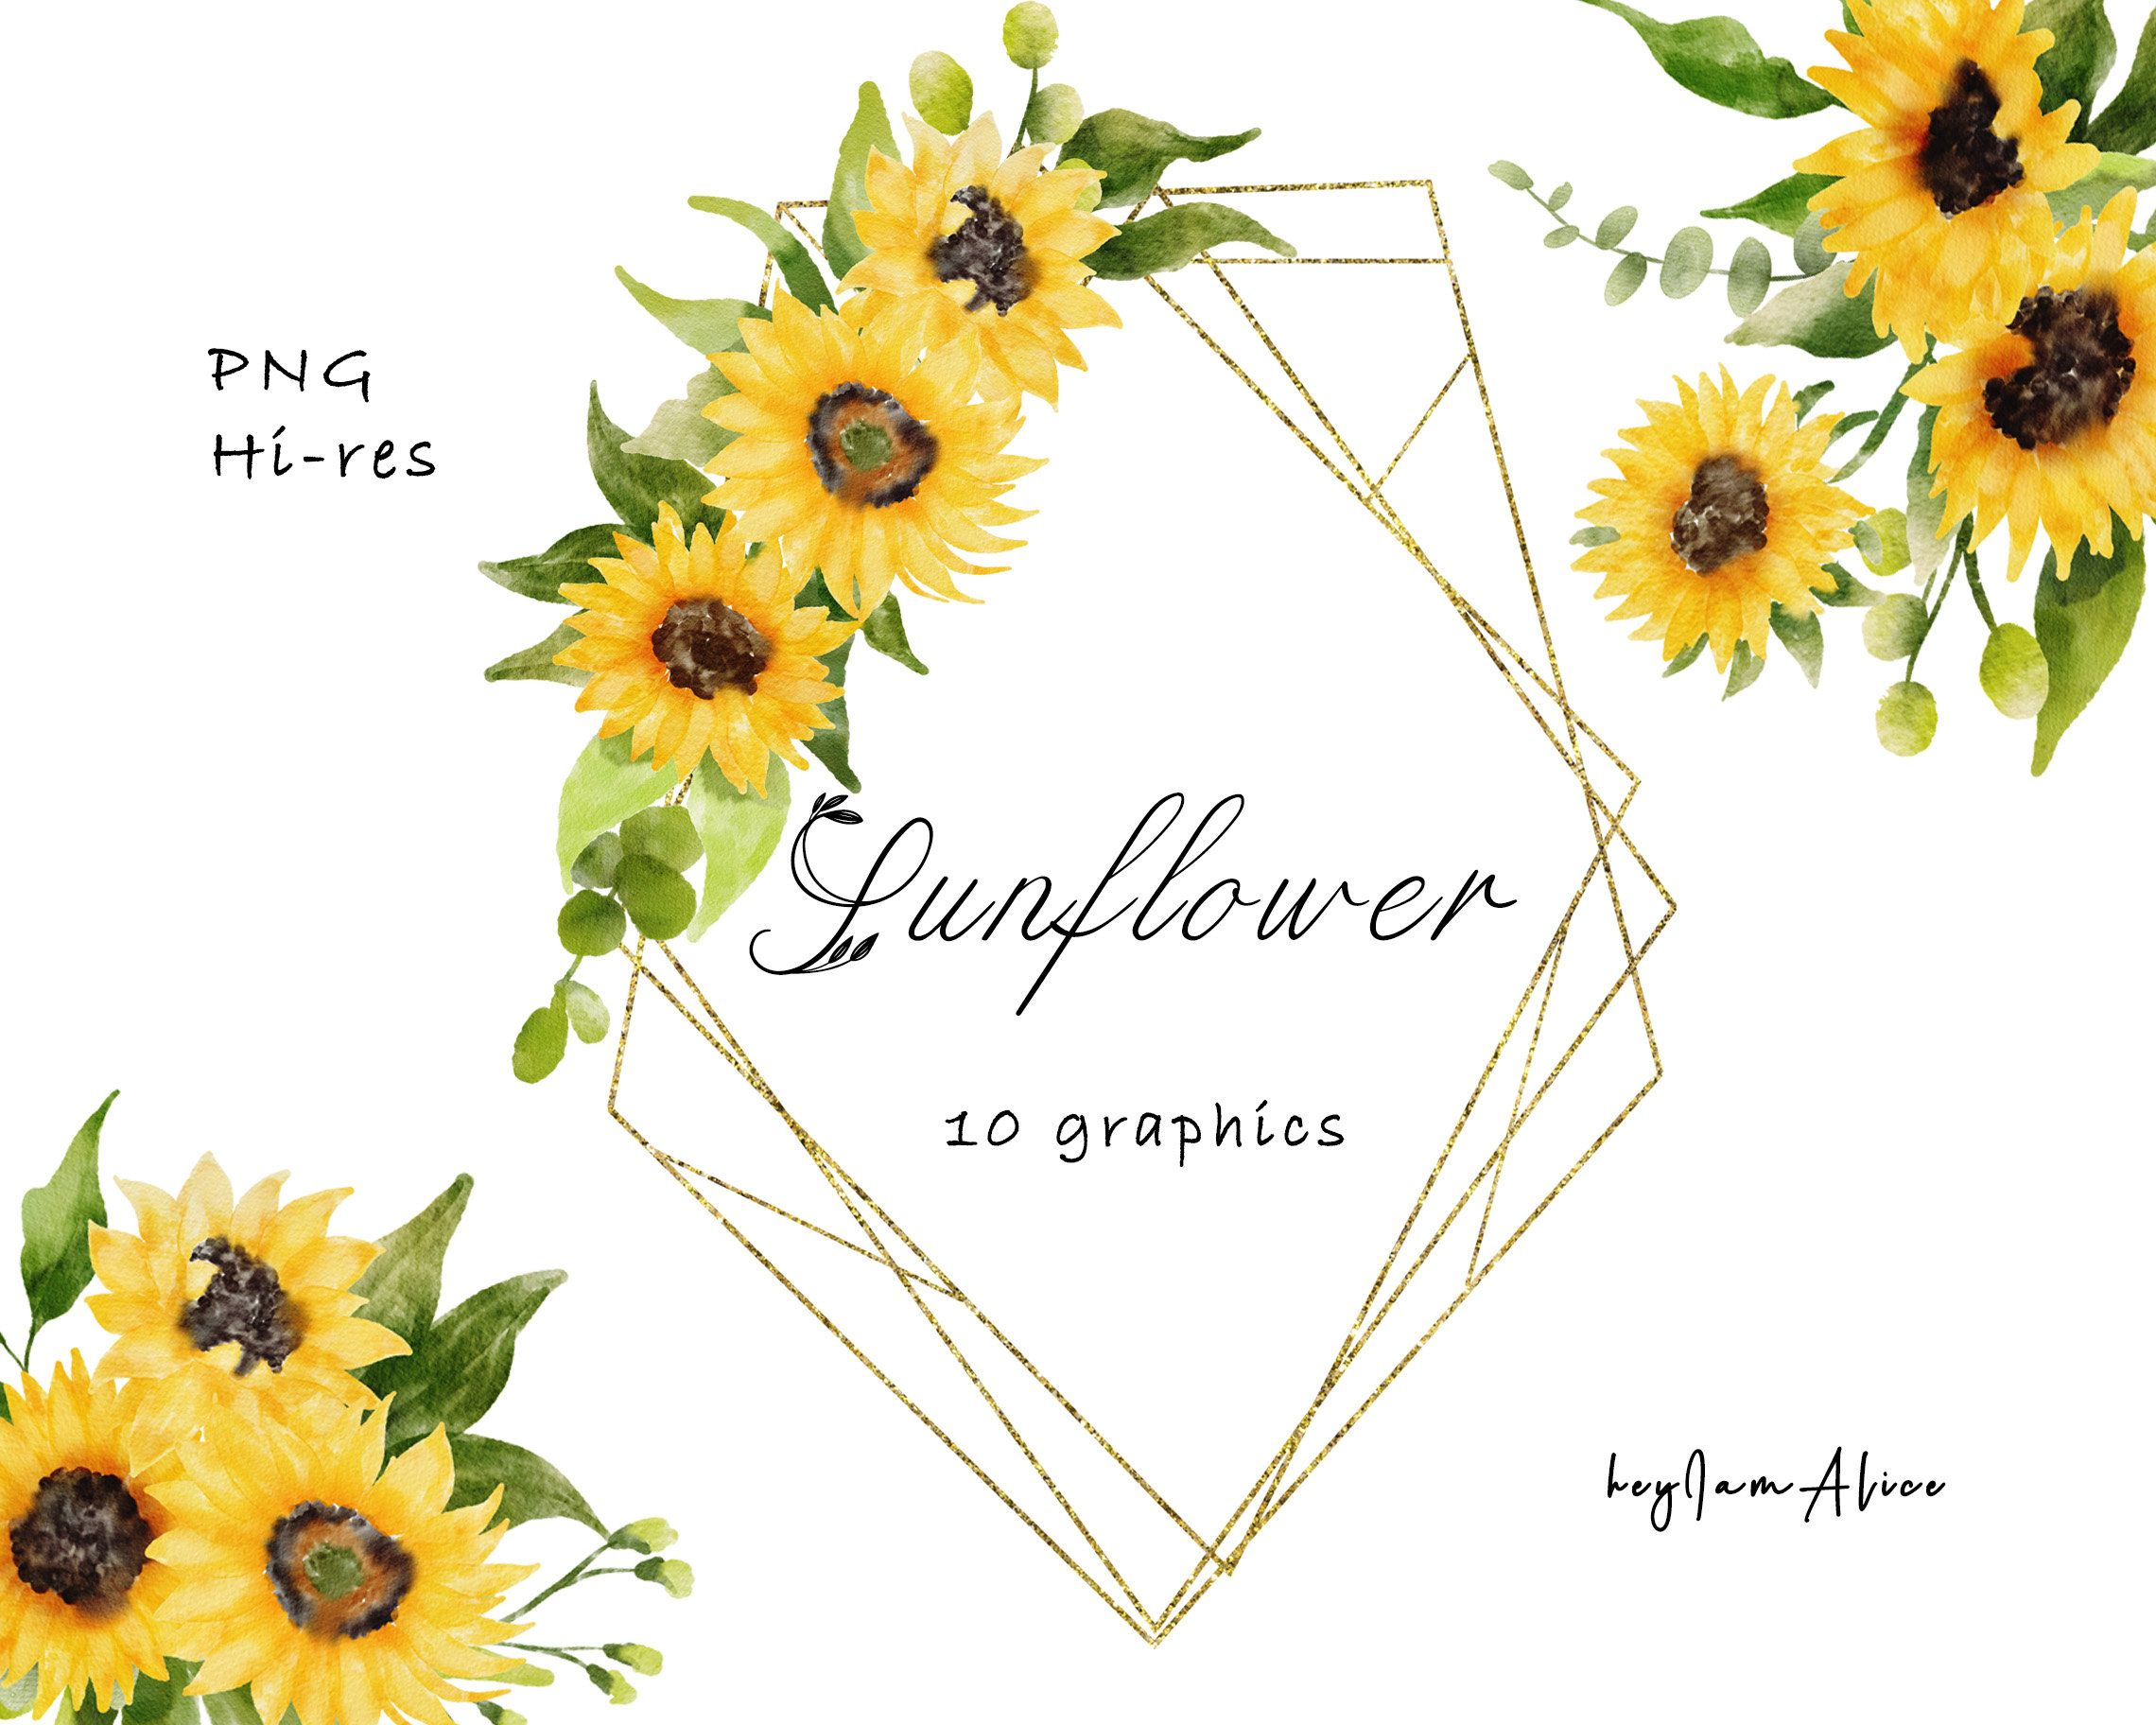 Sunflower Watercolor Clipart Free Commercial Use Greenery Clipart Wedding Diy Yellow Sunflower Graphic Commercial Border Png Digital Watercolor Sunflower Clip Art Watercolor Clipart